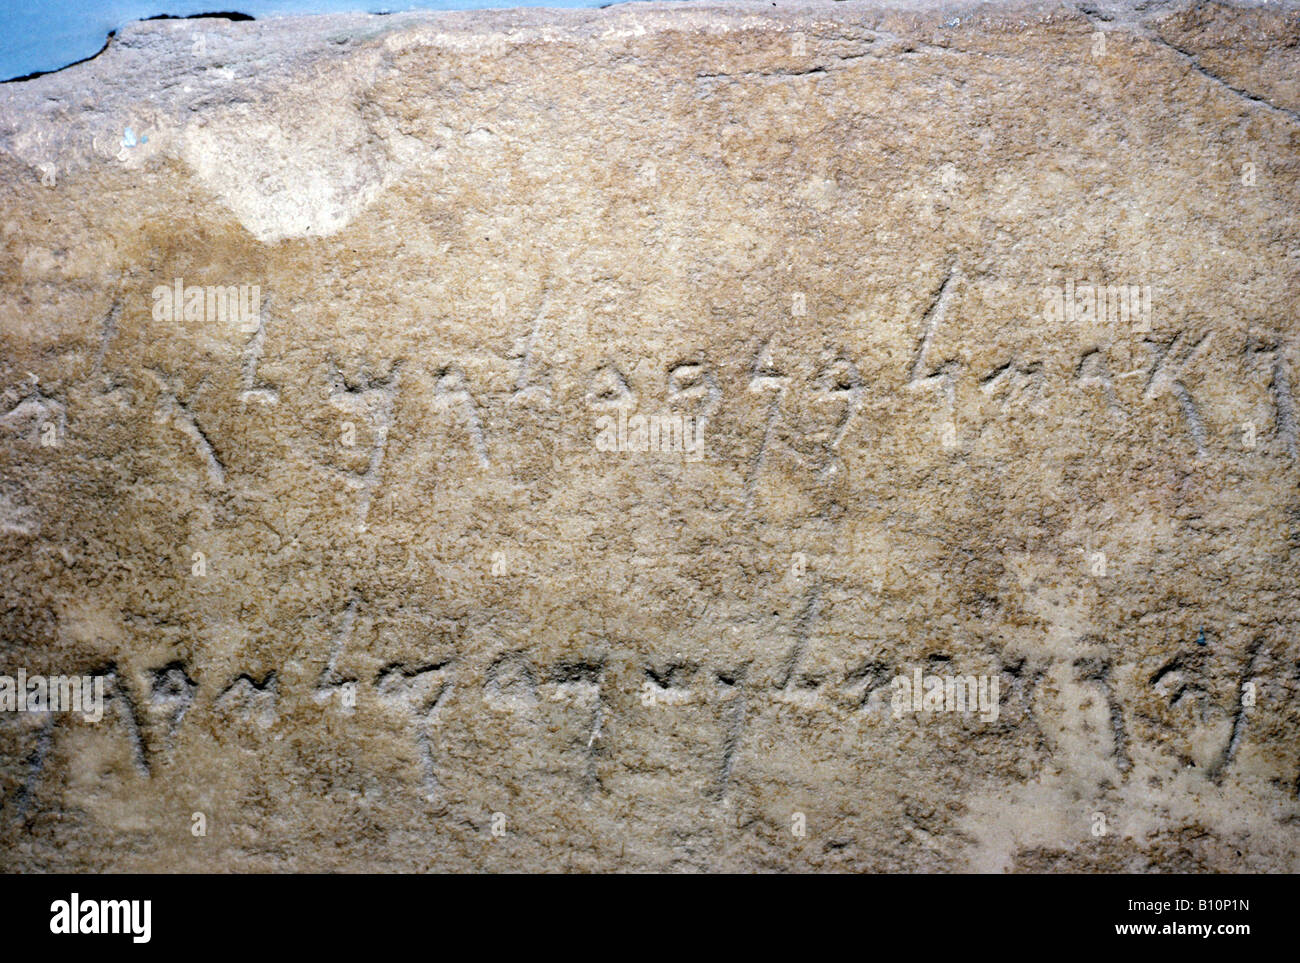 Phoenician inscription to god Reshef 5th c BC Lebanon - Stock Image